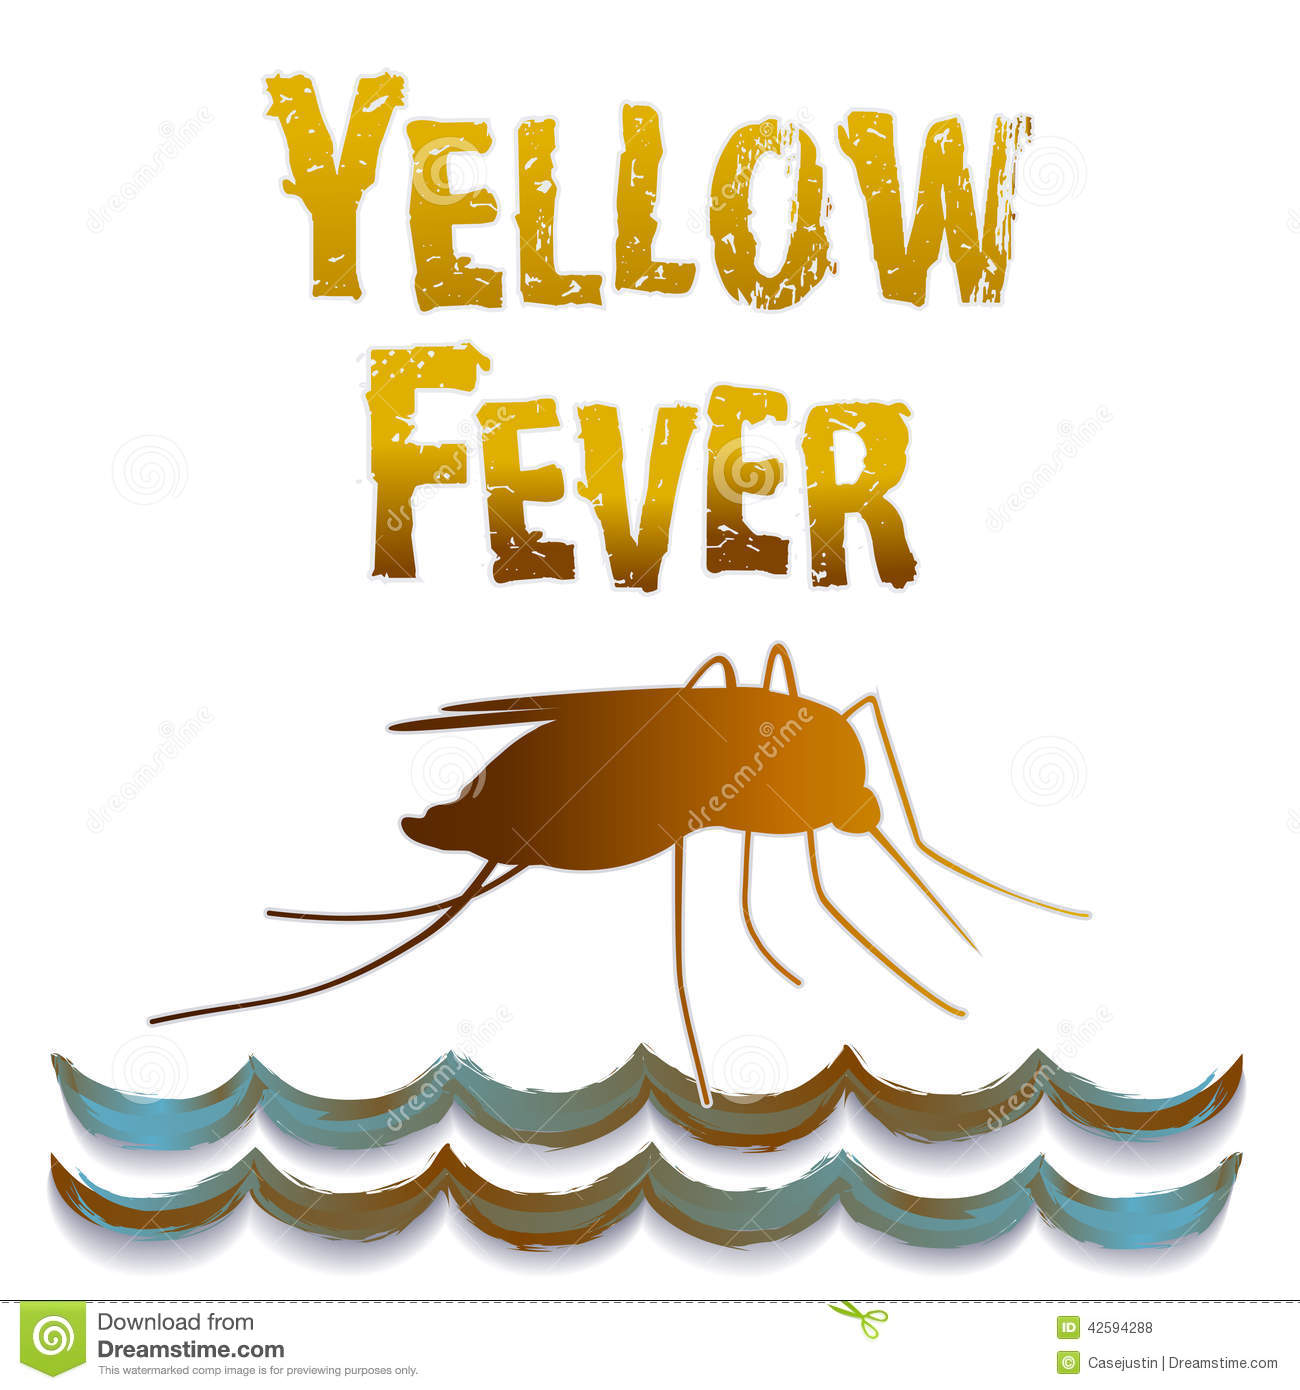 motorhome clip art with Stock Illustration Yellow Fever Mosquito Standing Water Graphic Illustration Isolated White Background Eps  Patible Image42594288 on Stock Illustration Yellow Fever Mosquito Standing Water Graphic Illustration Isolated White Background Eps  patible Image42594288 additionally Dolphin Wallpapers together with Bismillahirrahmanirrahim Calligraphy as well Pipeliner Wife On Pinterest Hard Hats Bling Shirts And Army Life Collection 5th Wheel C er Clipart Top 305th Wheel C er Clipart Microsoft Clip Art together with Saint Patricks Day Coloring Pages.